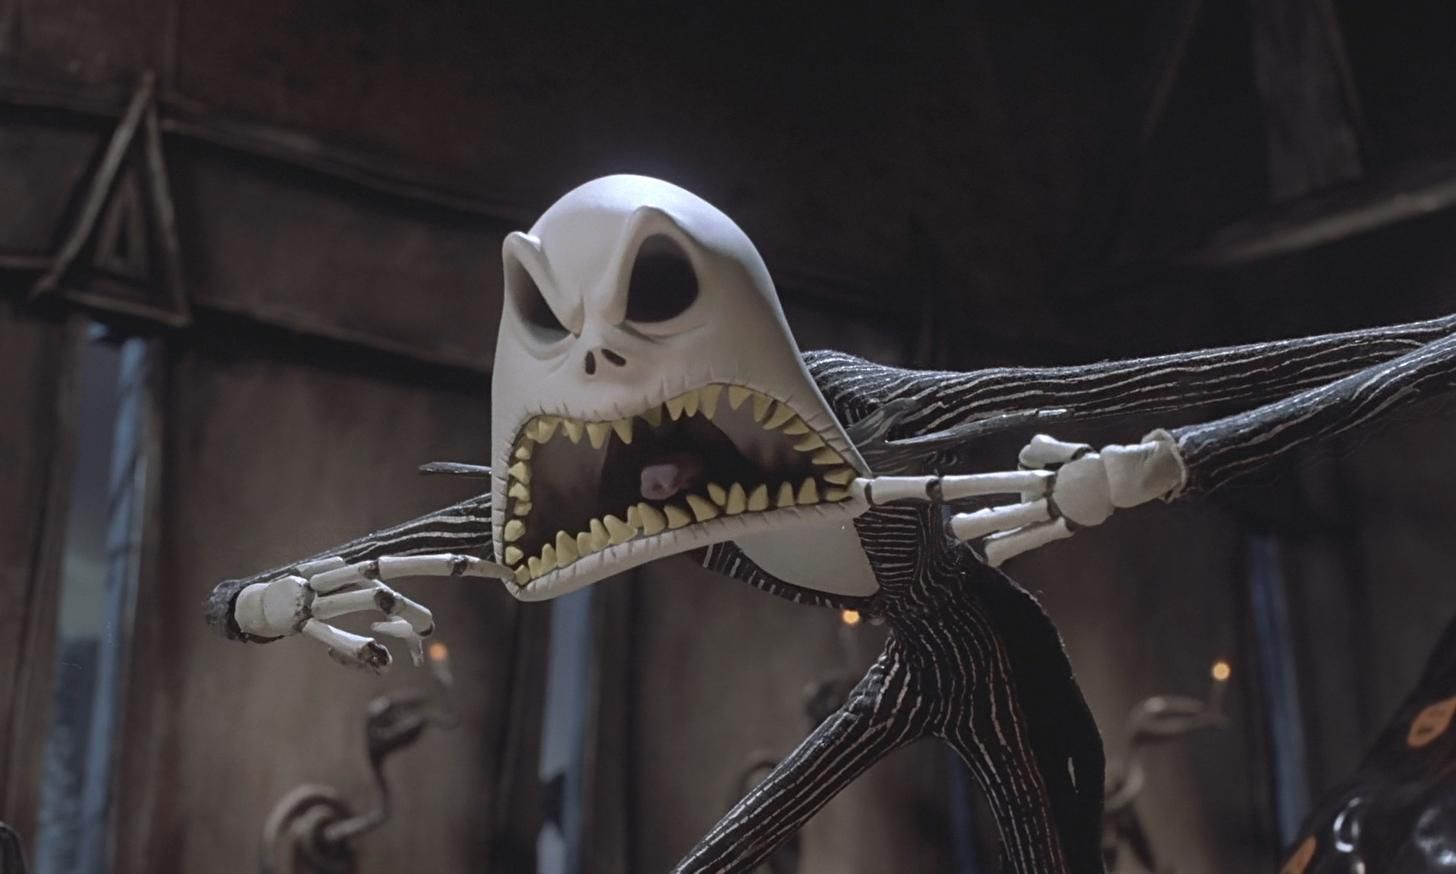 Pin On Nightmare Before Christmas Deck